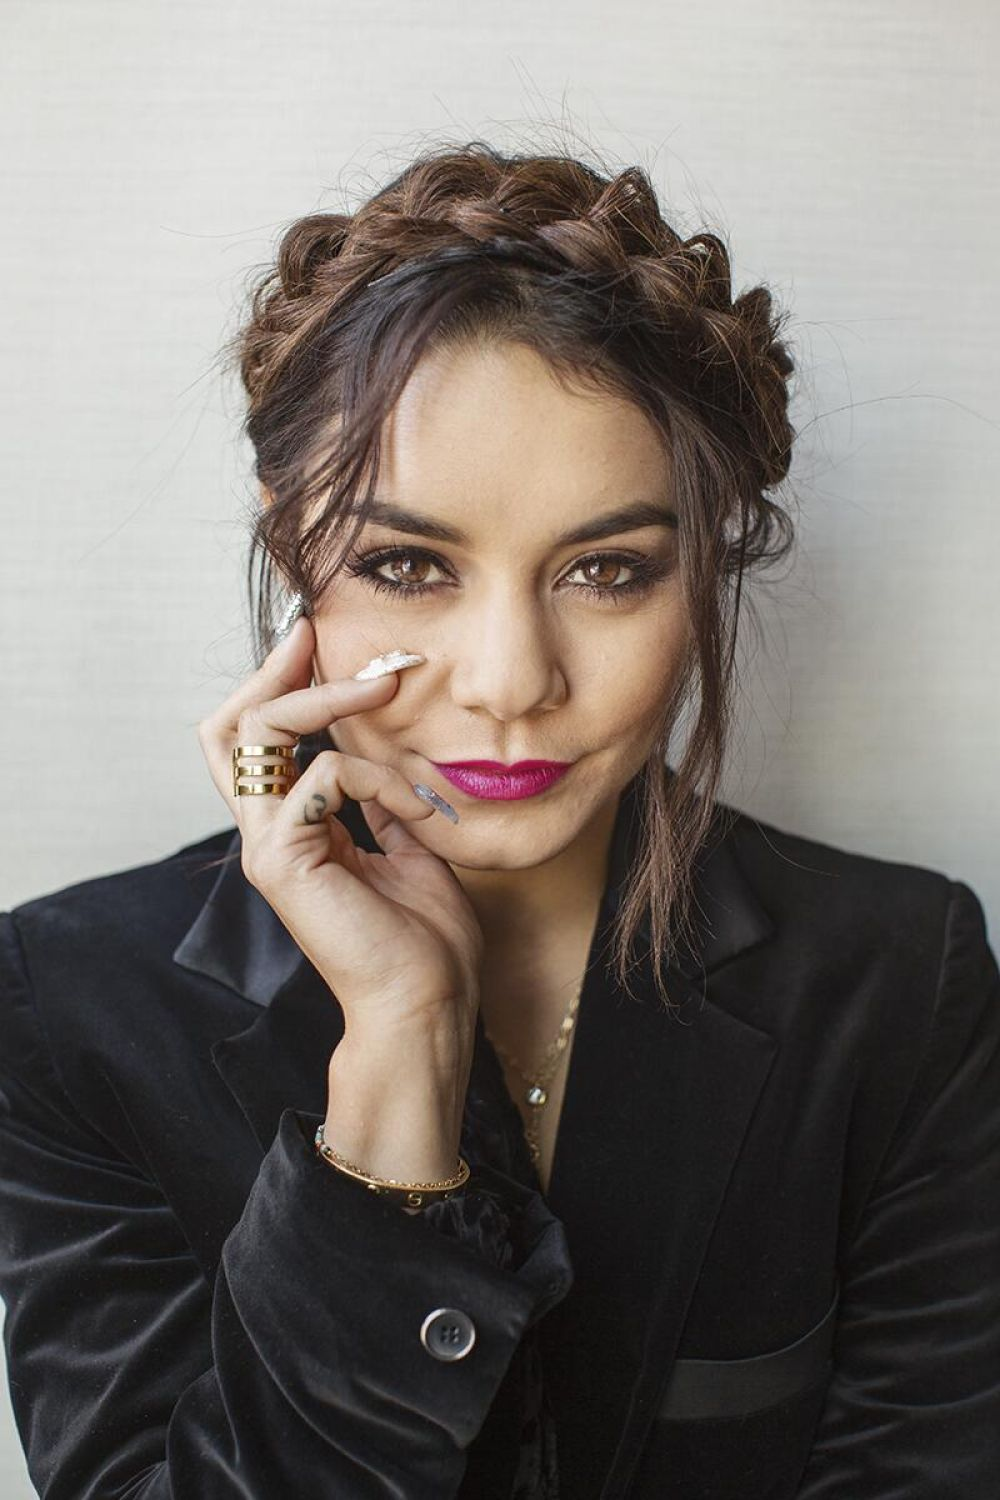 VANESSA HUDGENS - Photoshoot by Lenny Gilmor for Chicago Tribune